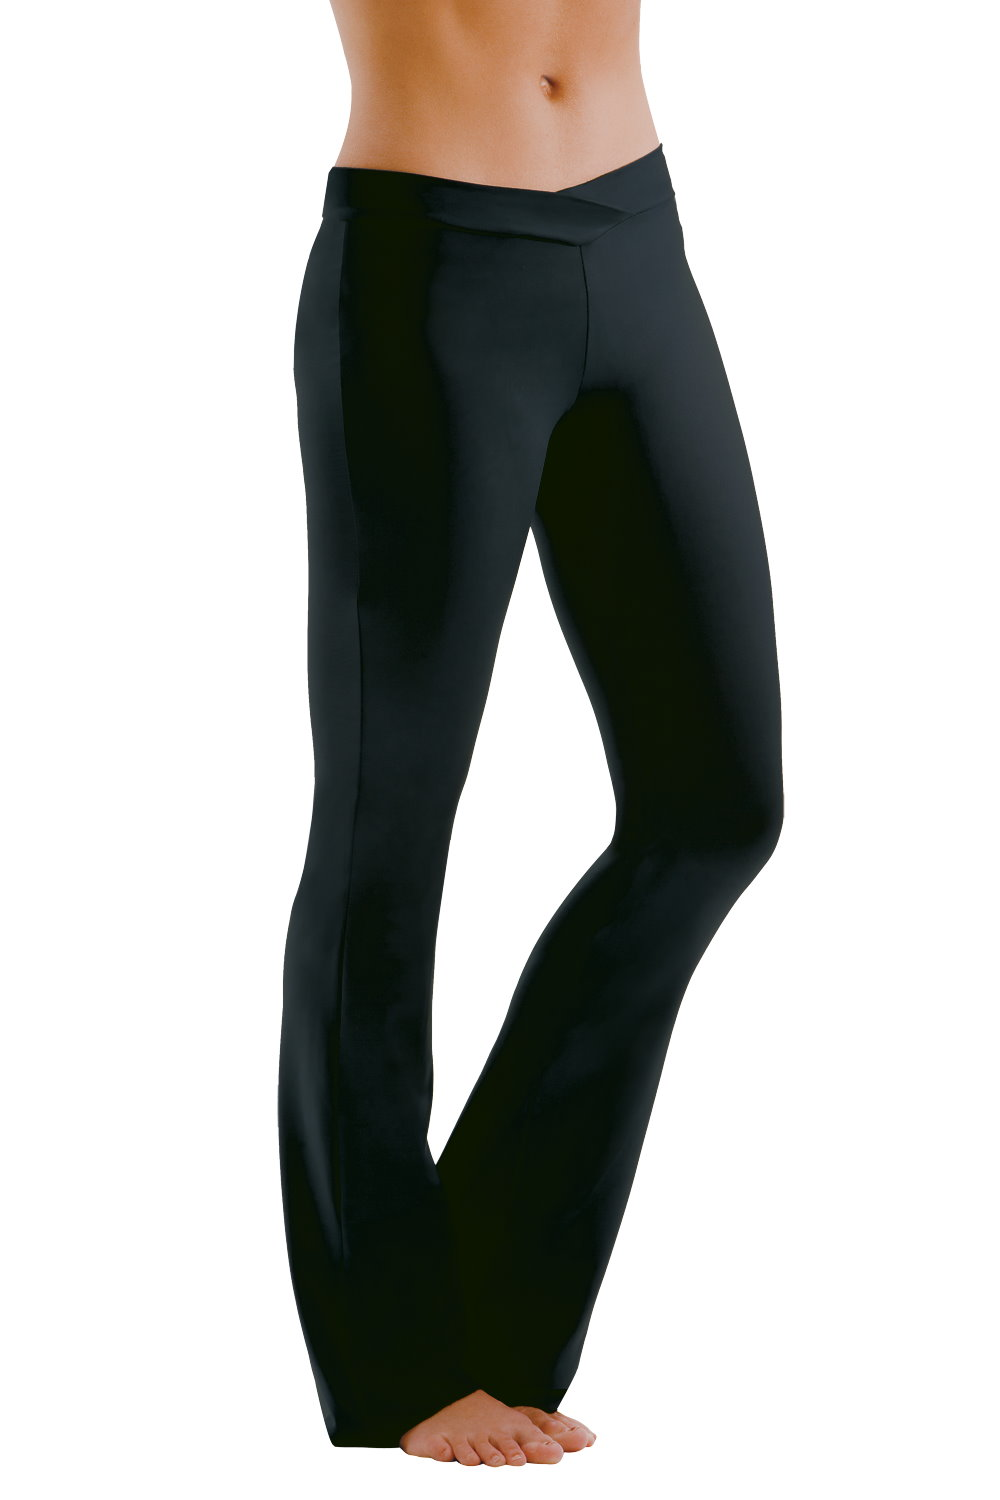 Women's Dance Pants. High-quality, style & comfort for all your dance needs.